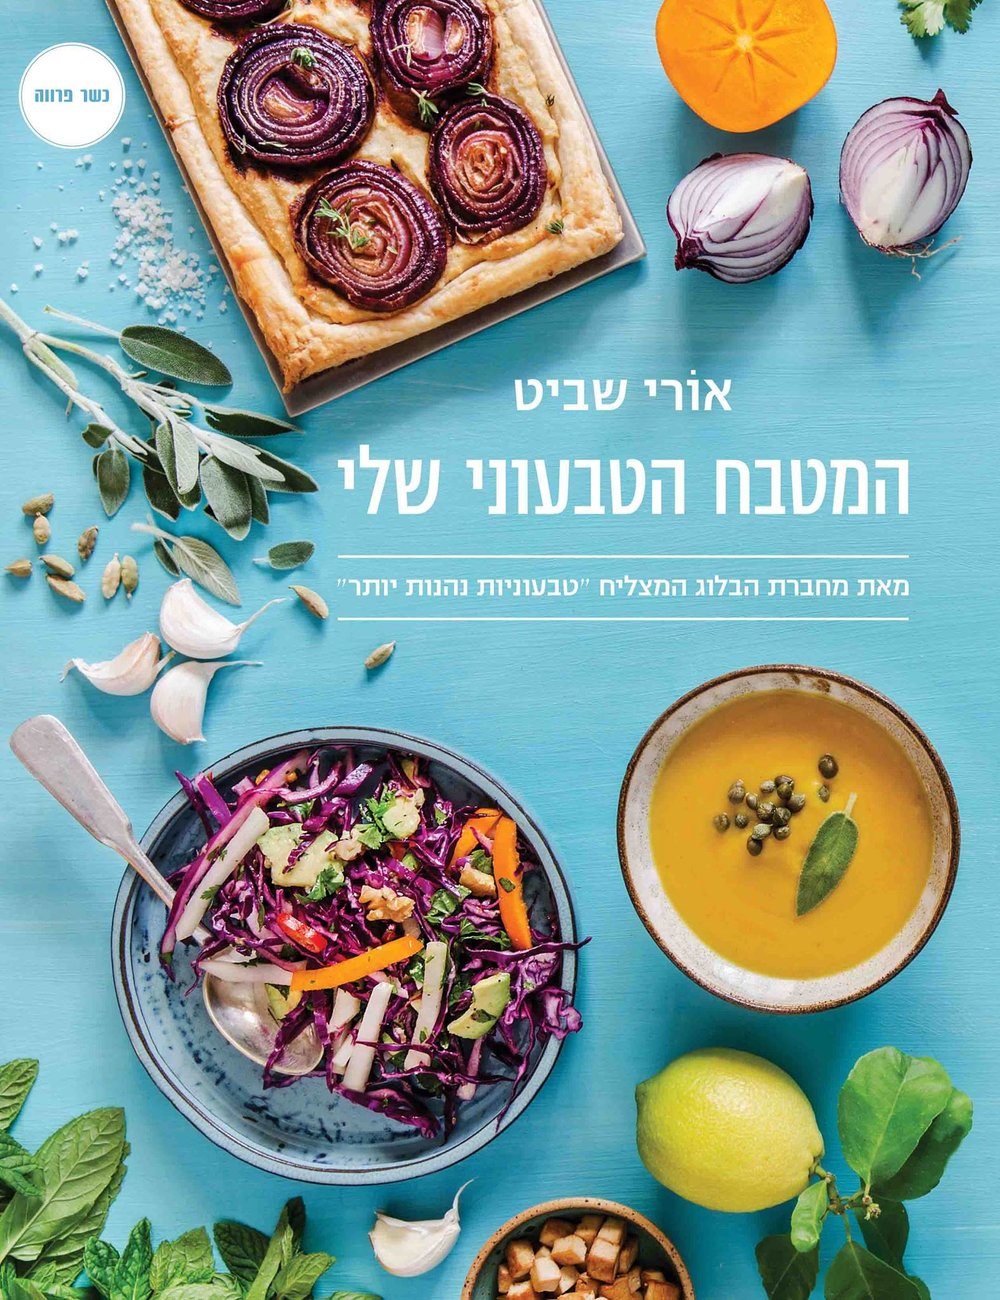 Editor - My Vegan Kitchenby Ori ShavitSteimatzky Publishing House, 2018